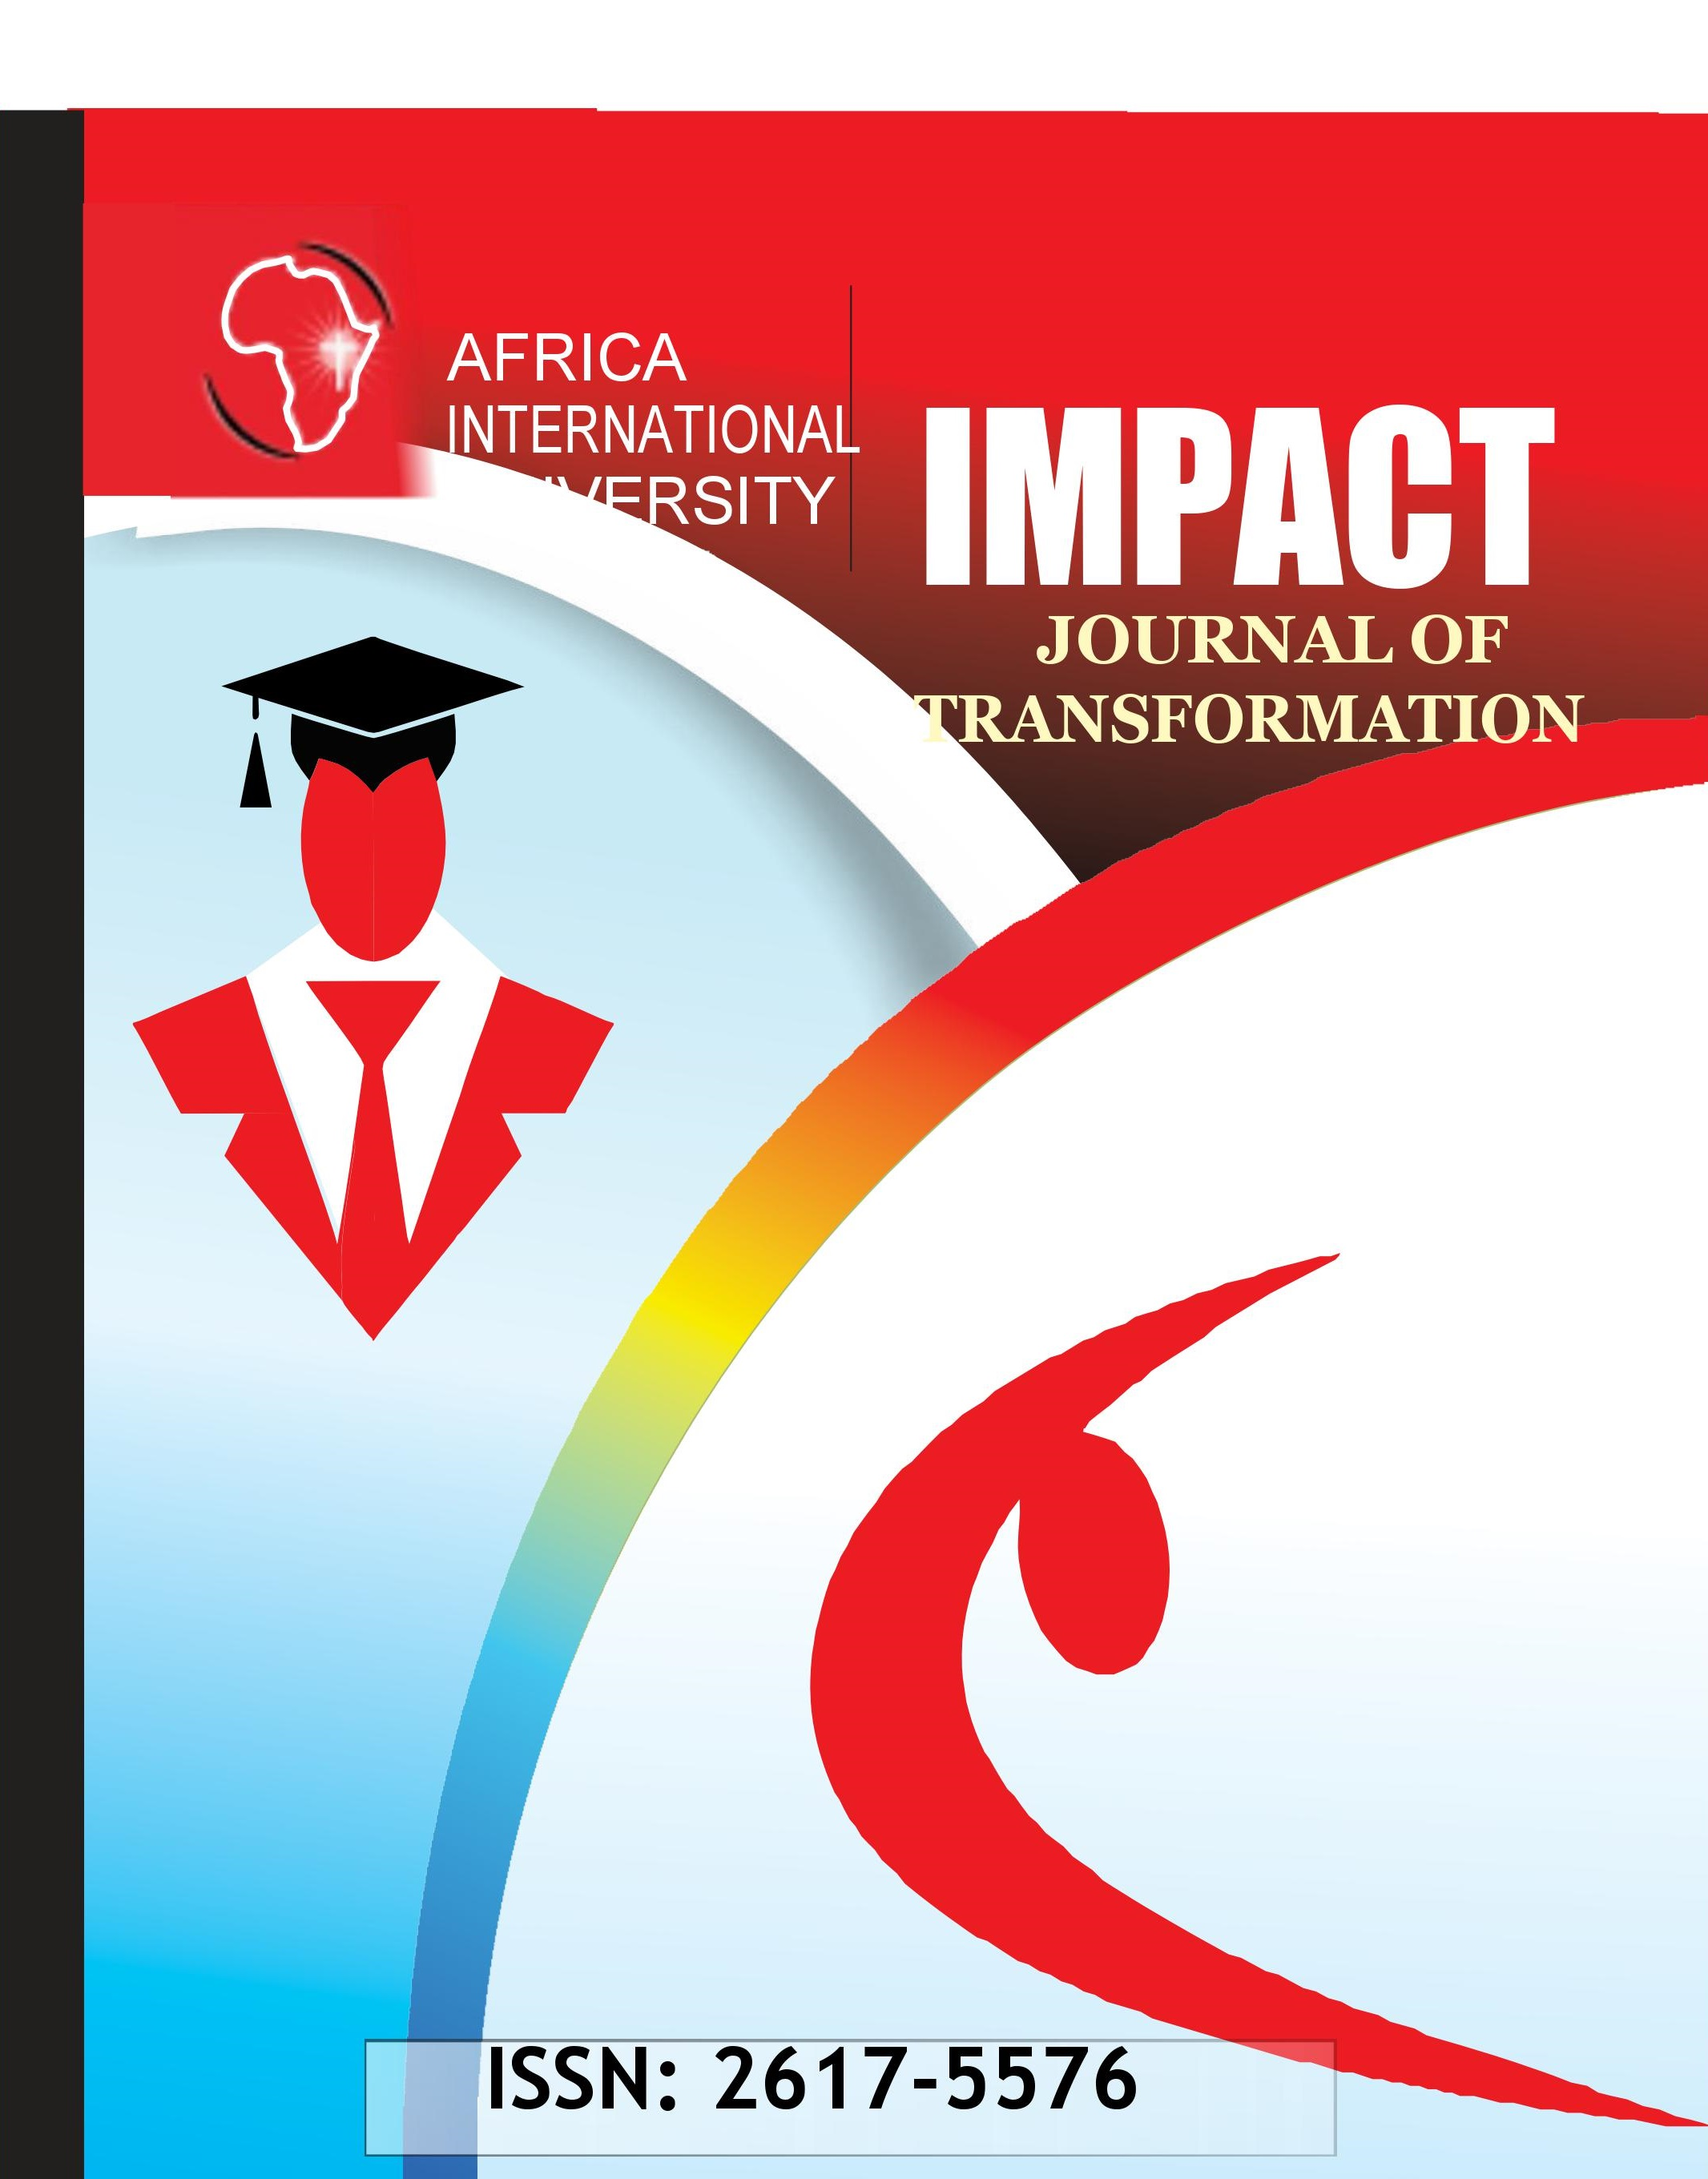 View Vol. 2 No. 1 (2019): Impact: Journal of Transformation